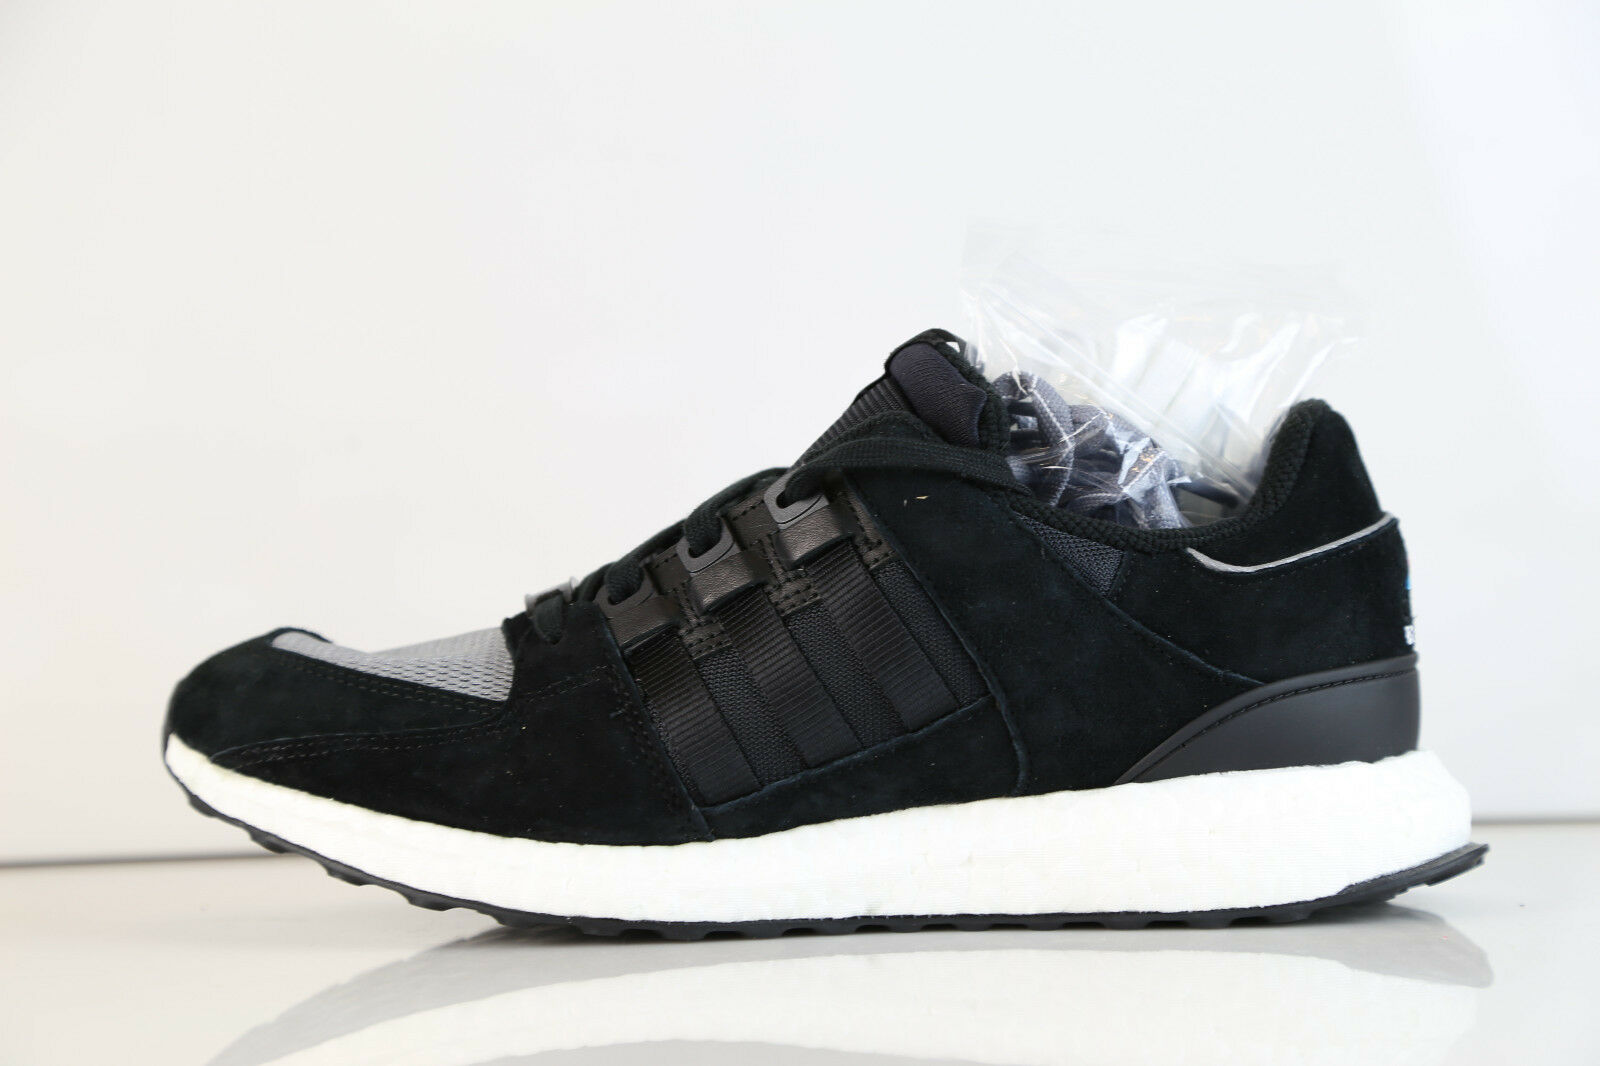 Adidas X Concepts Ultra Equipment Support EQT 93/16 Ultra Concepts Boost Black White 5-11.5 1 9297b2